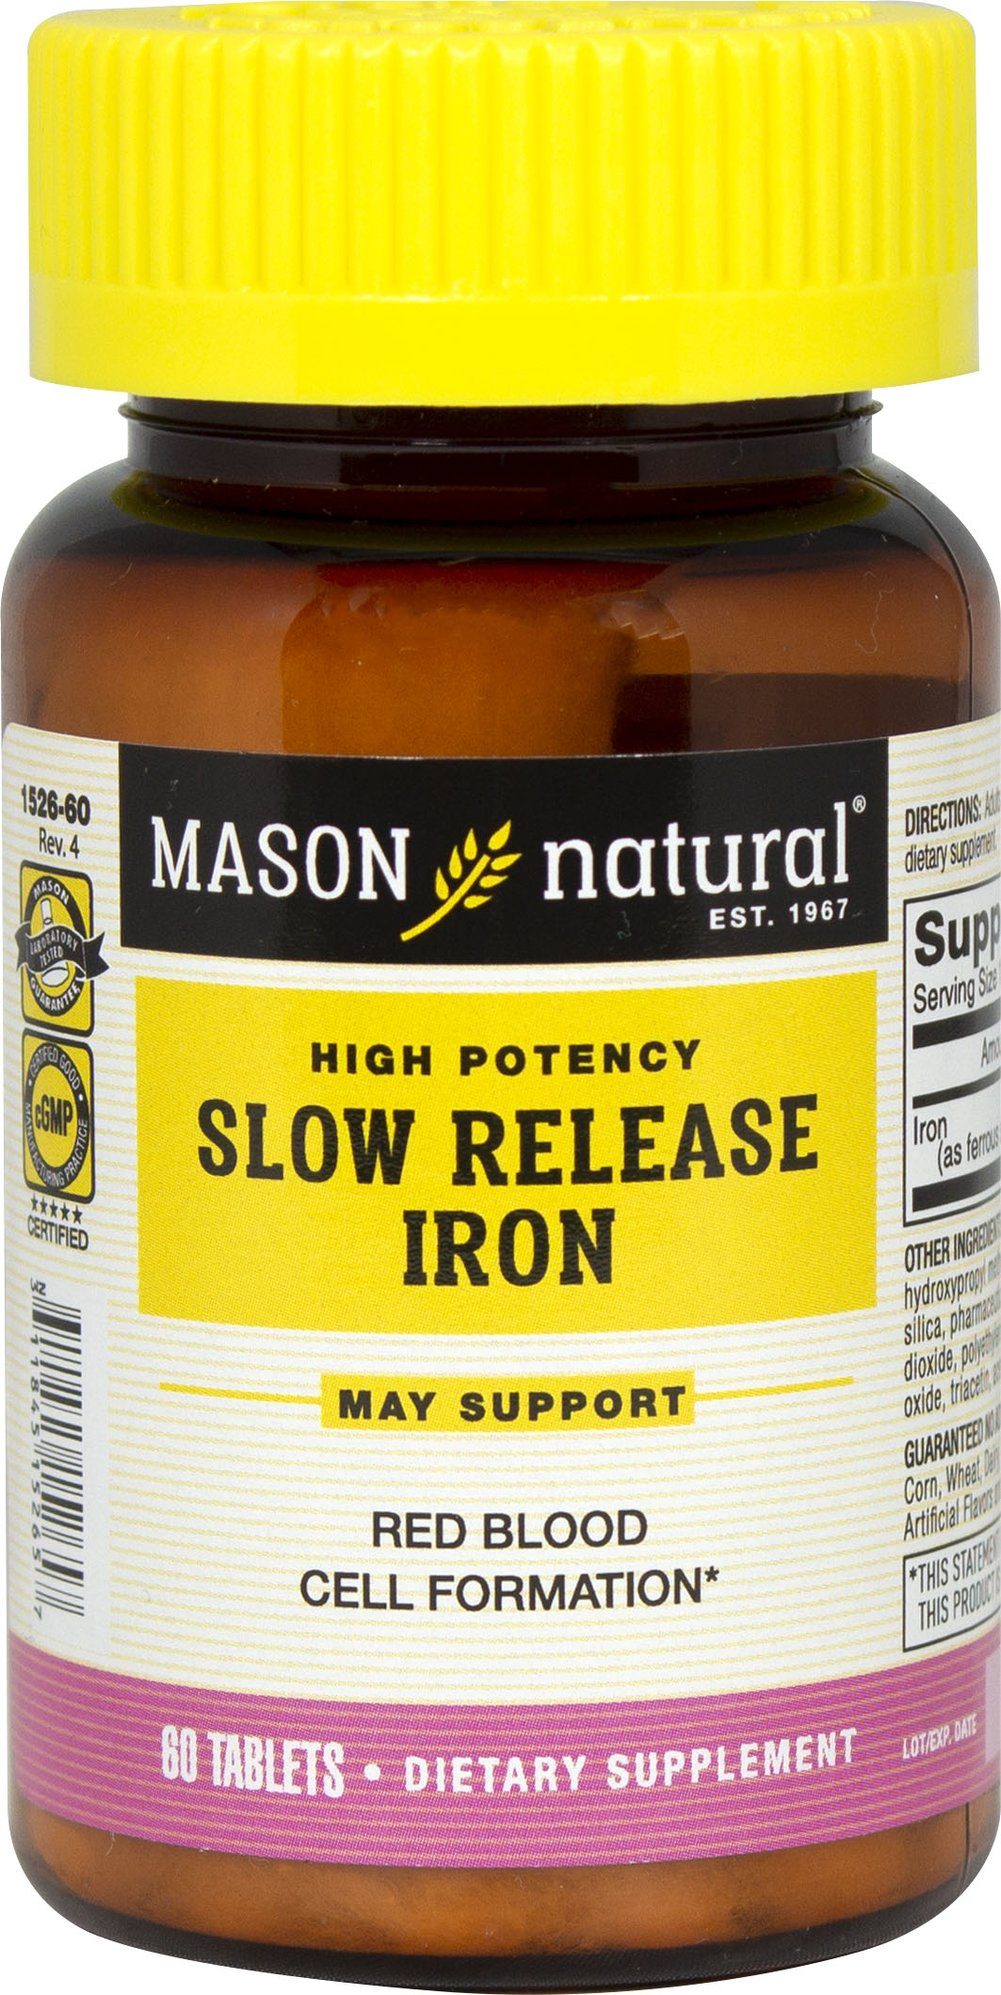 Iron 50 mg Slow Release Thumbnail Alternate Bottle View